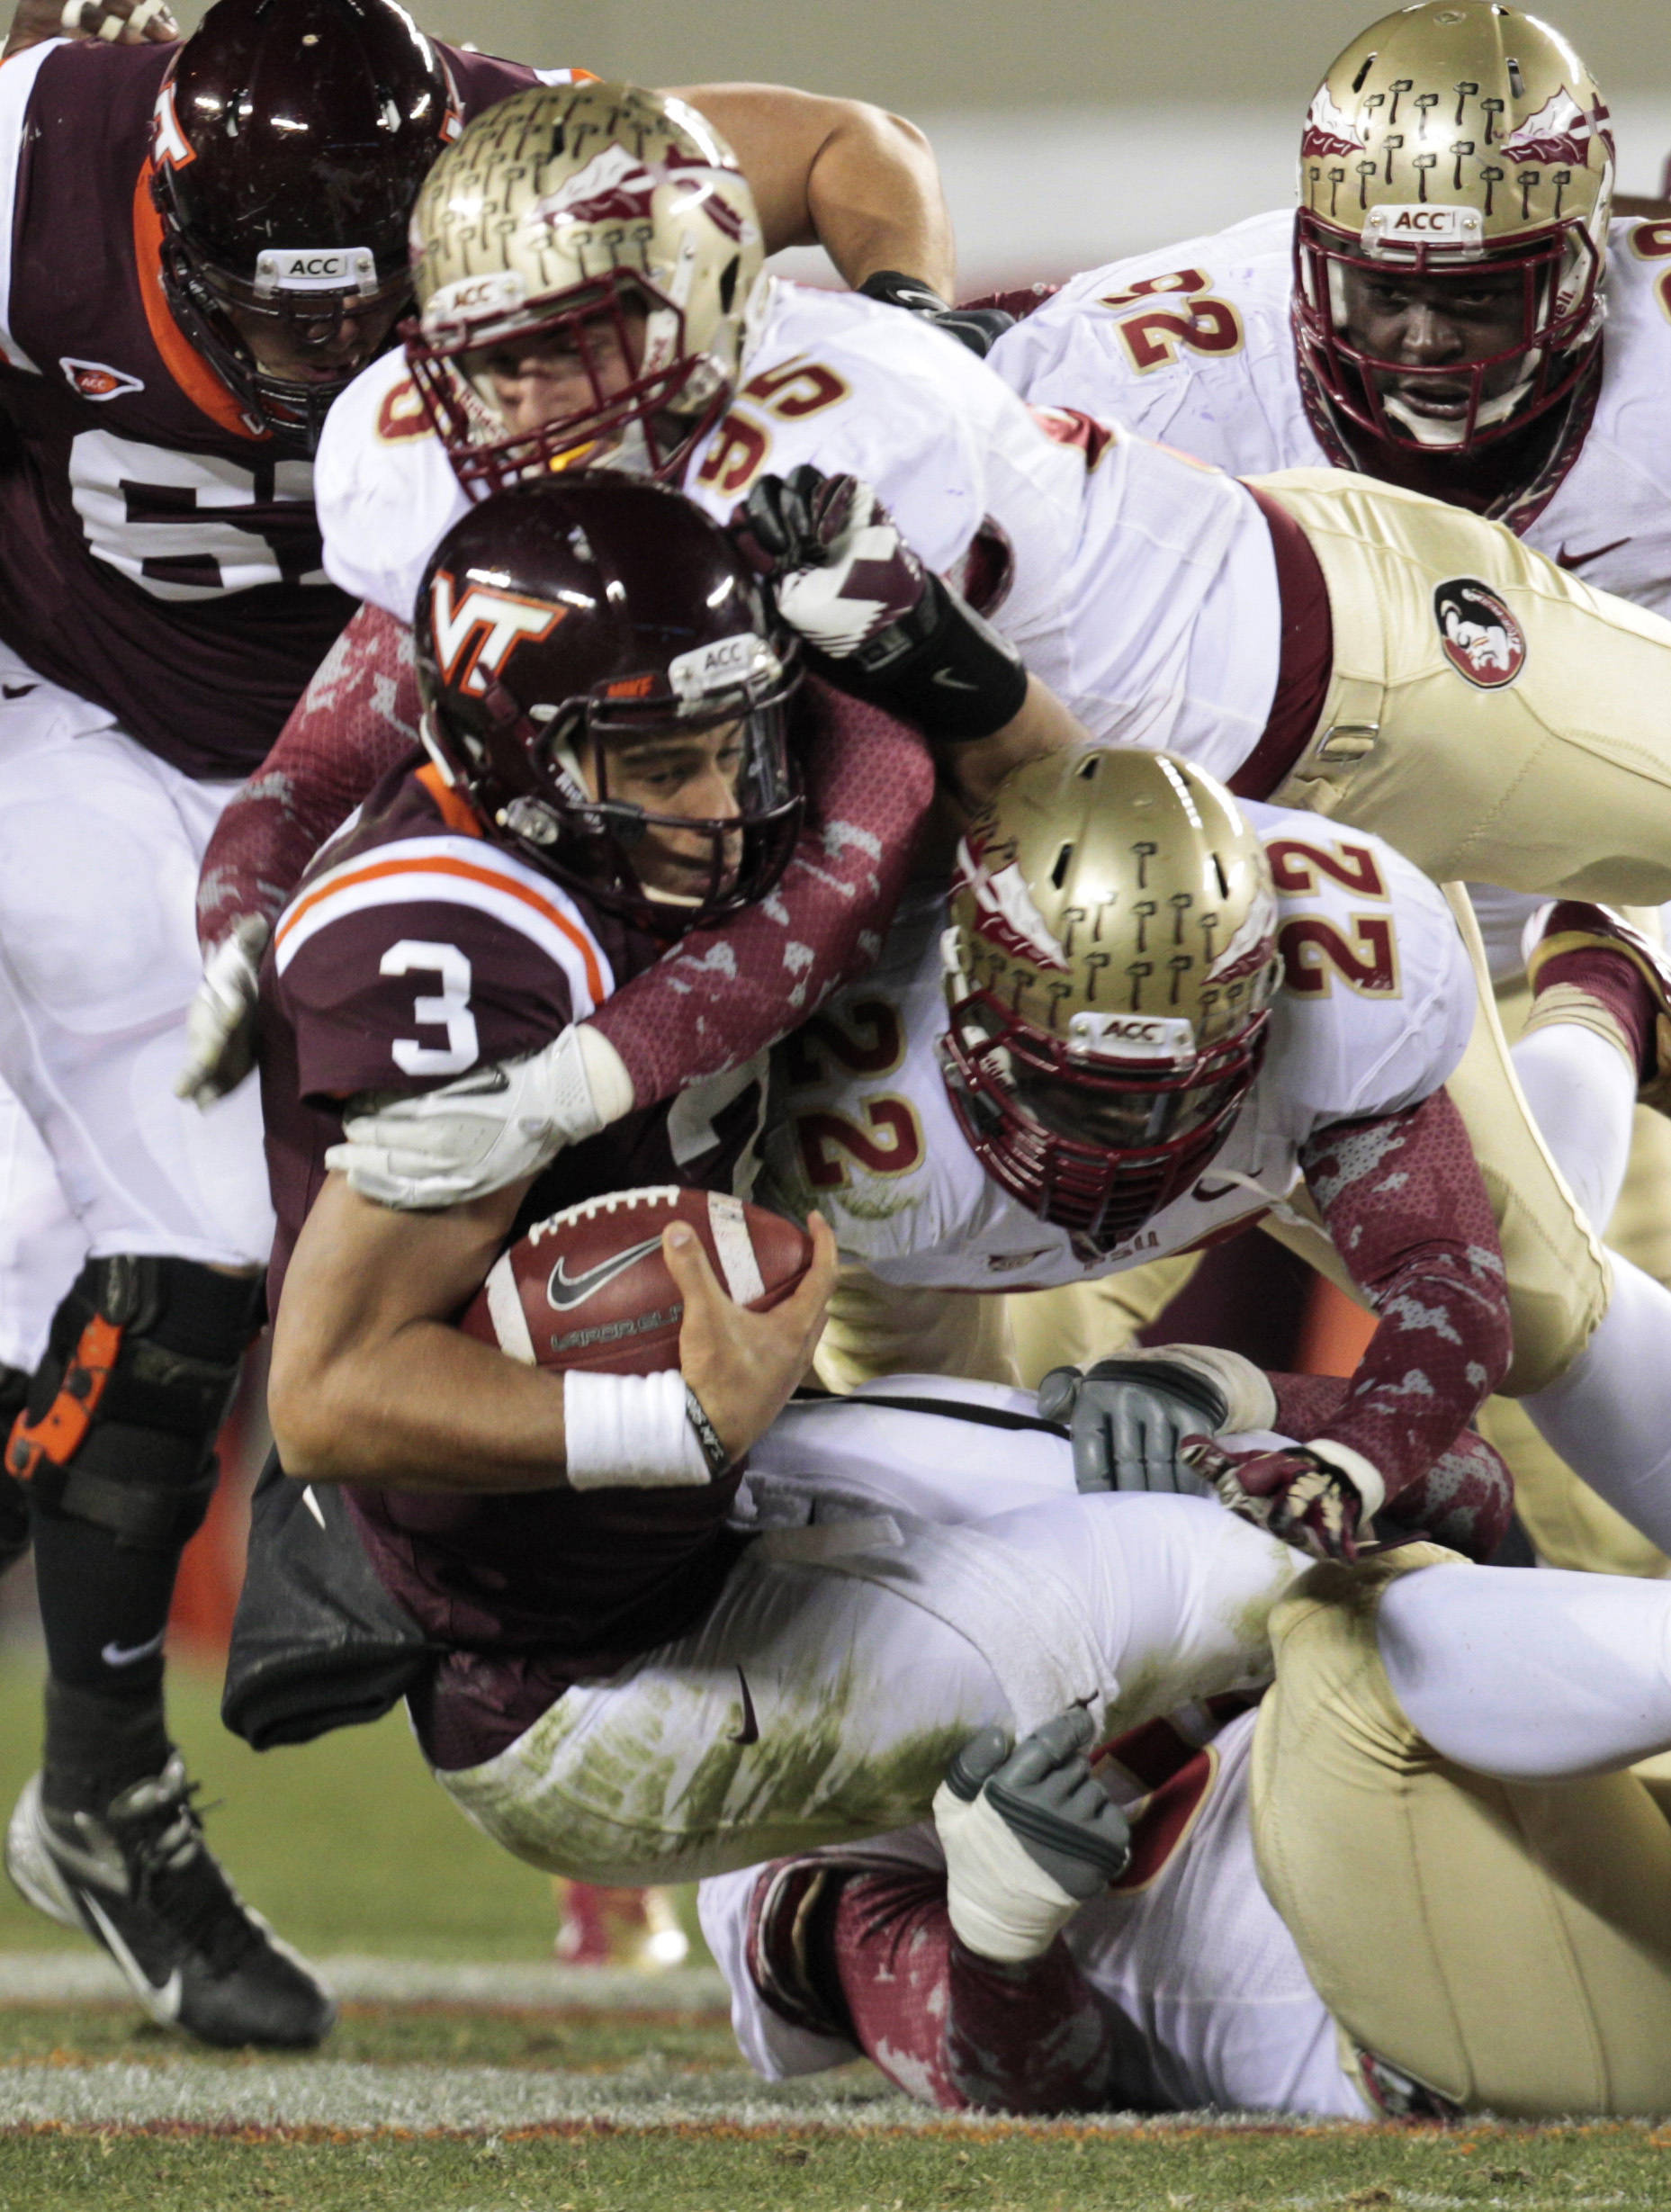 Virginia Tech quarterback Logan Thomas (3) is sacked by Florida State linebacker Telvin Smith (22) and defensive end Bjoern Werner (95). (AP Photo/Steve Helber)